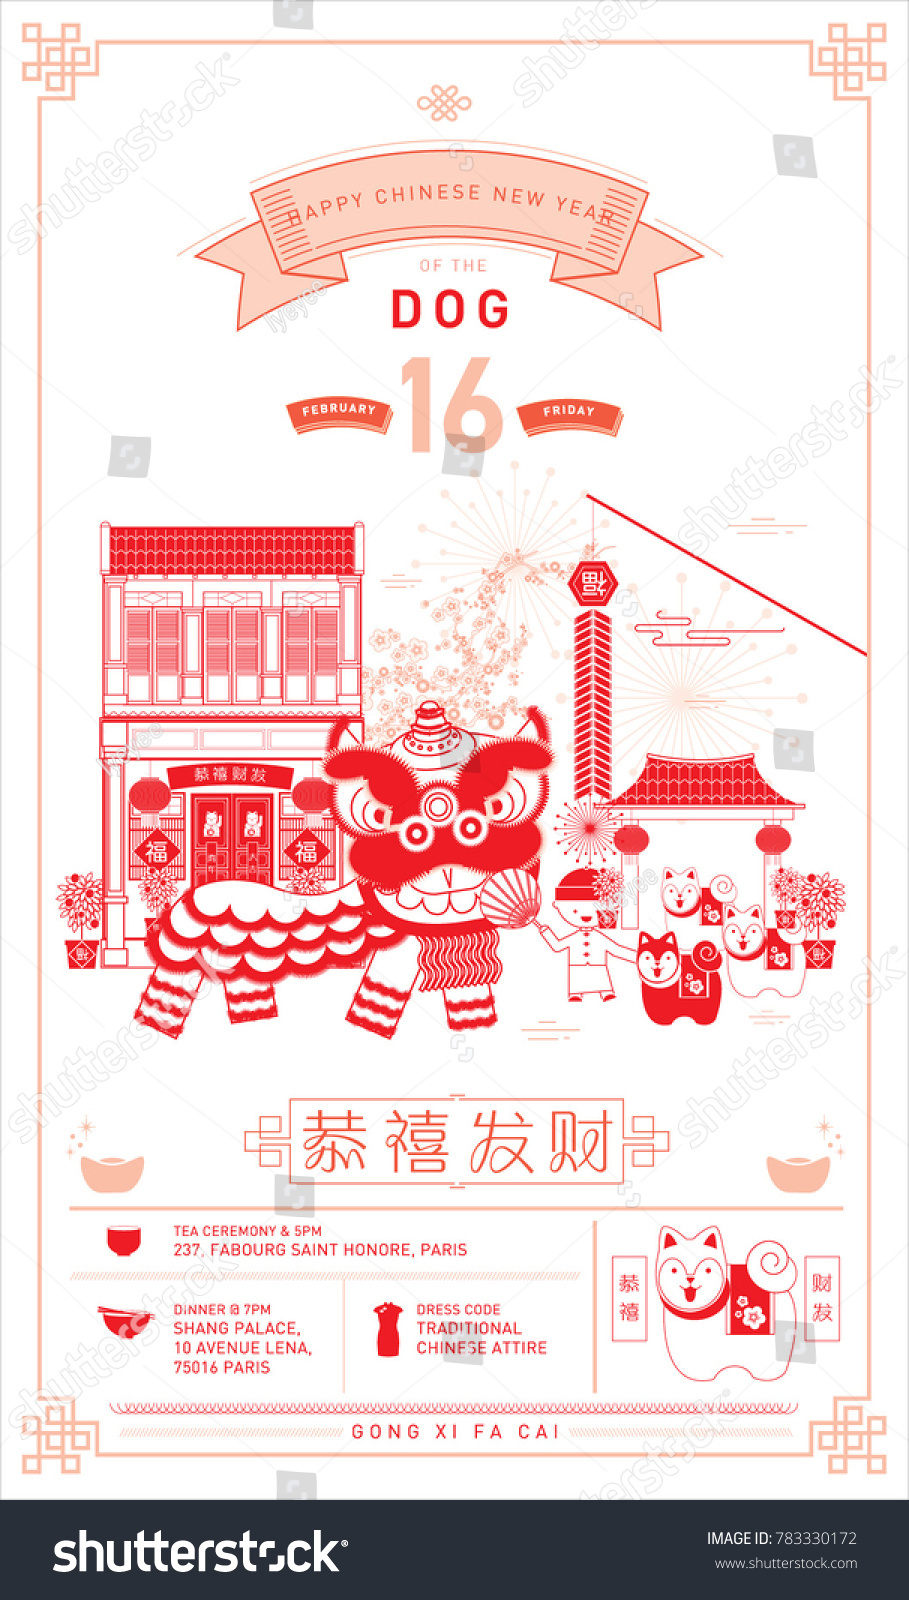 Chinese Calendar Chinese New Year Dog Stock Vector Royalty Free